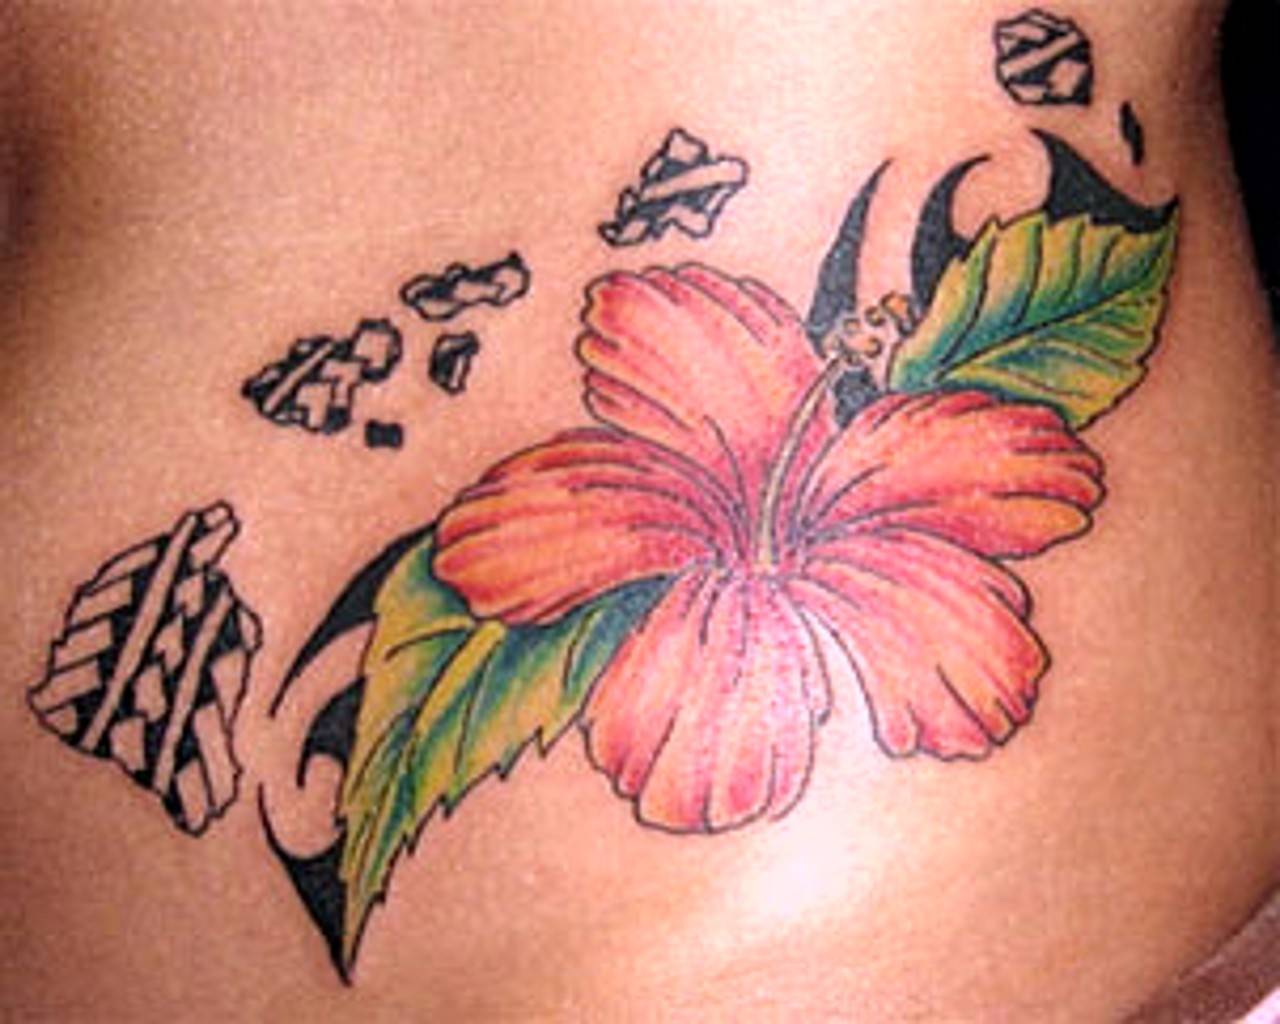 Hibiscus tattoos designs ideas and meaning tattoos for you pictures of hibiscus flower tattoos izmirmasajfo